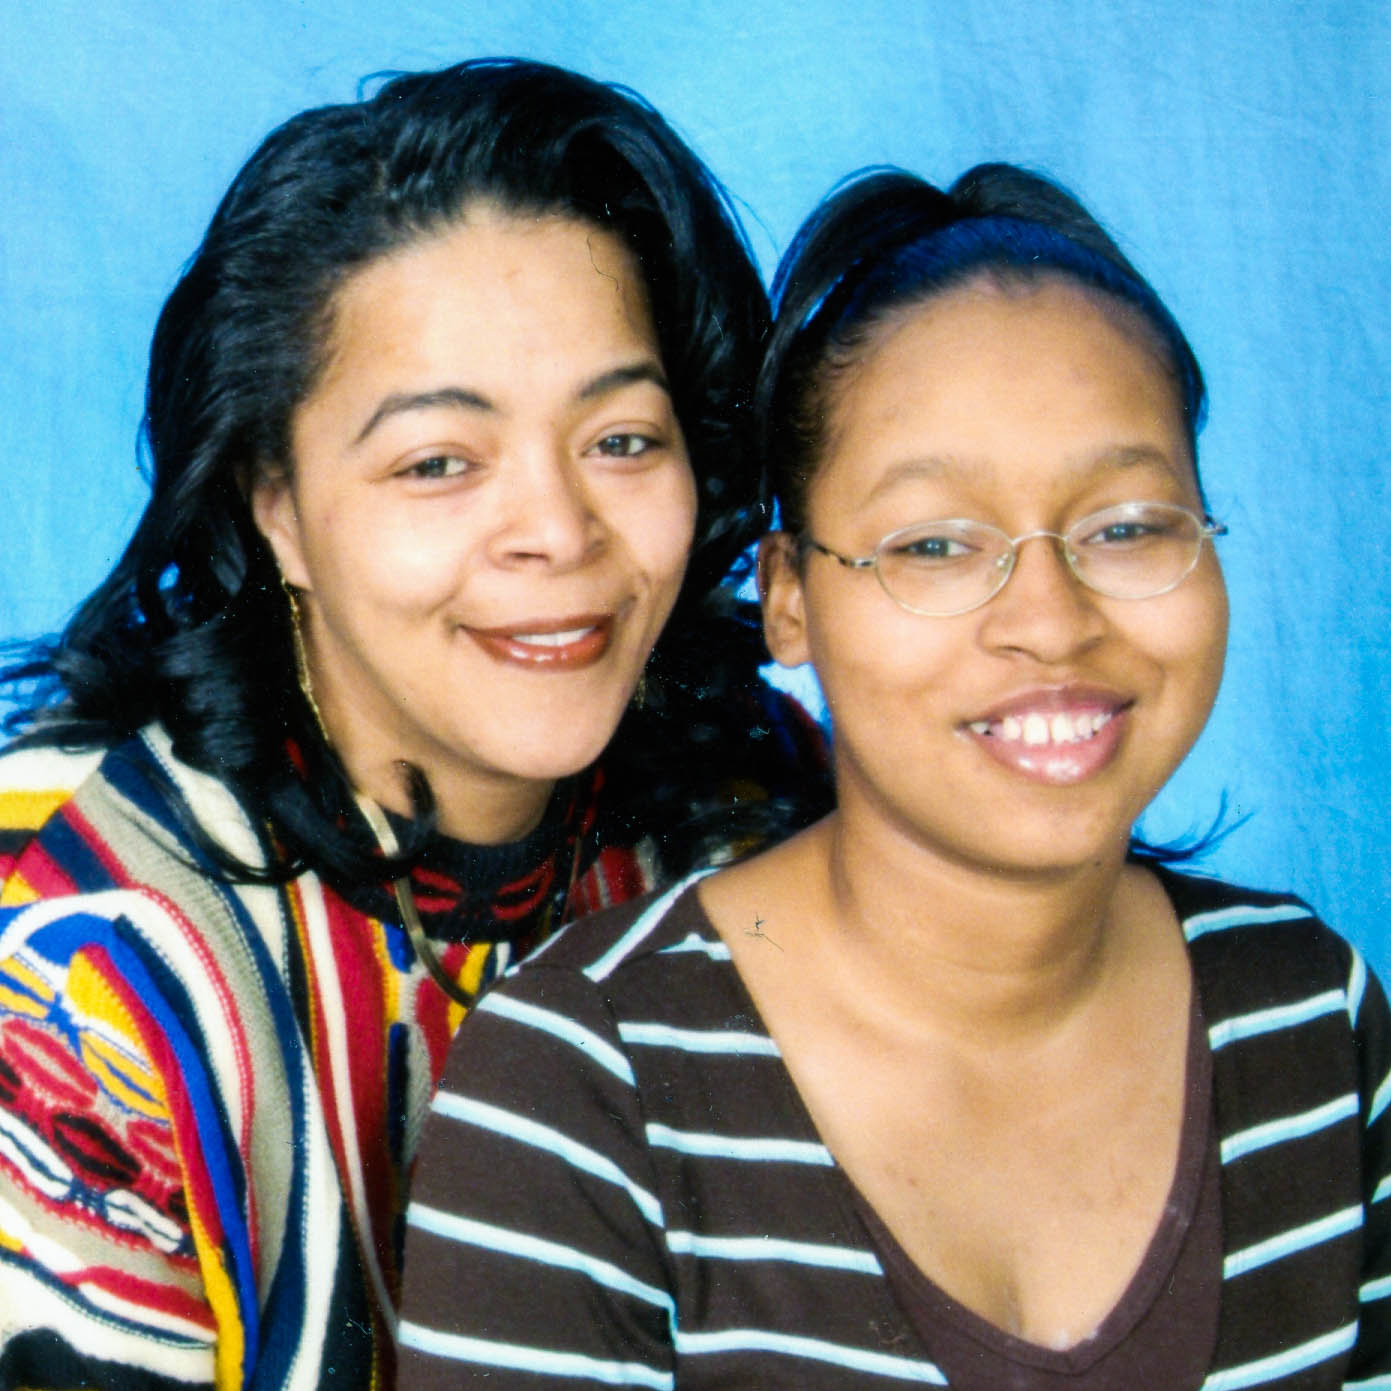 Jassmine McBride with her mother, Jacqueline.